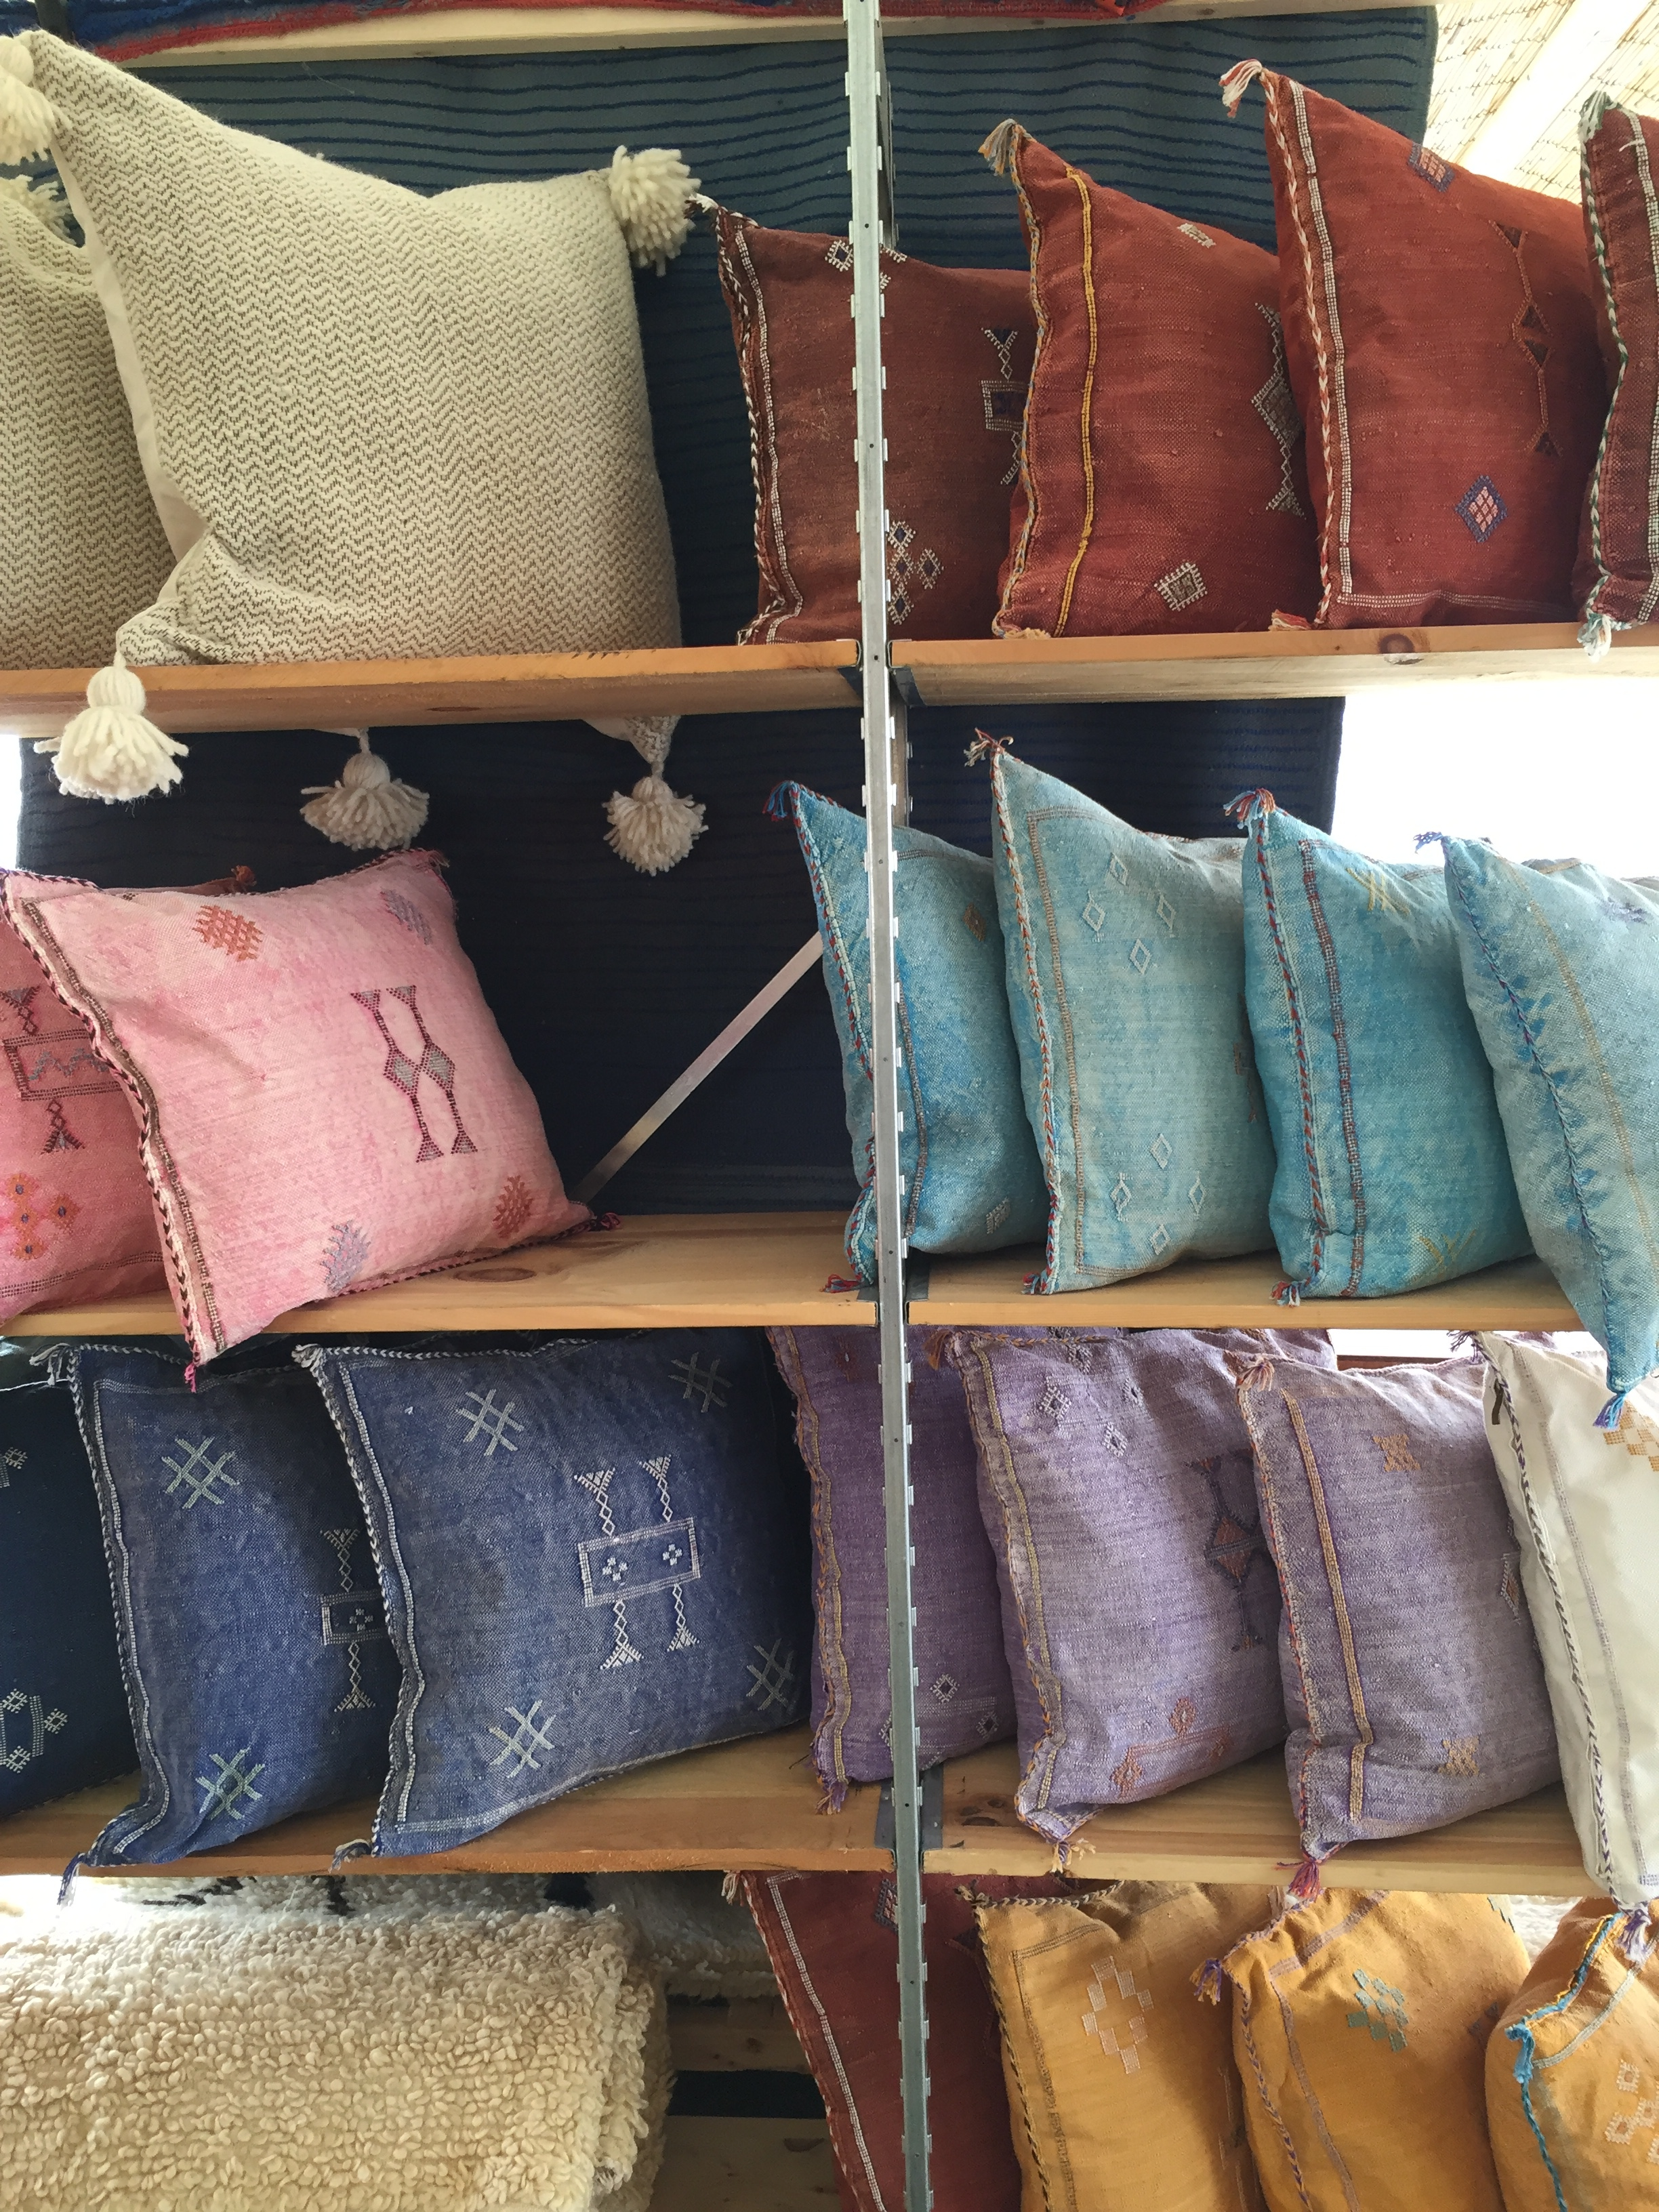 I loved these Moroccan inspired pillows from  Heja Home .